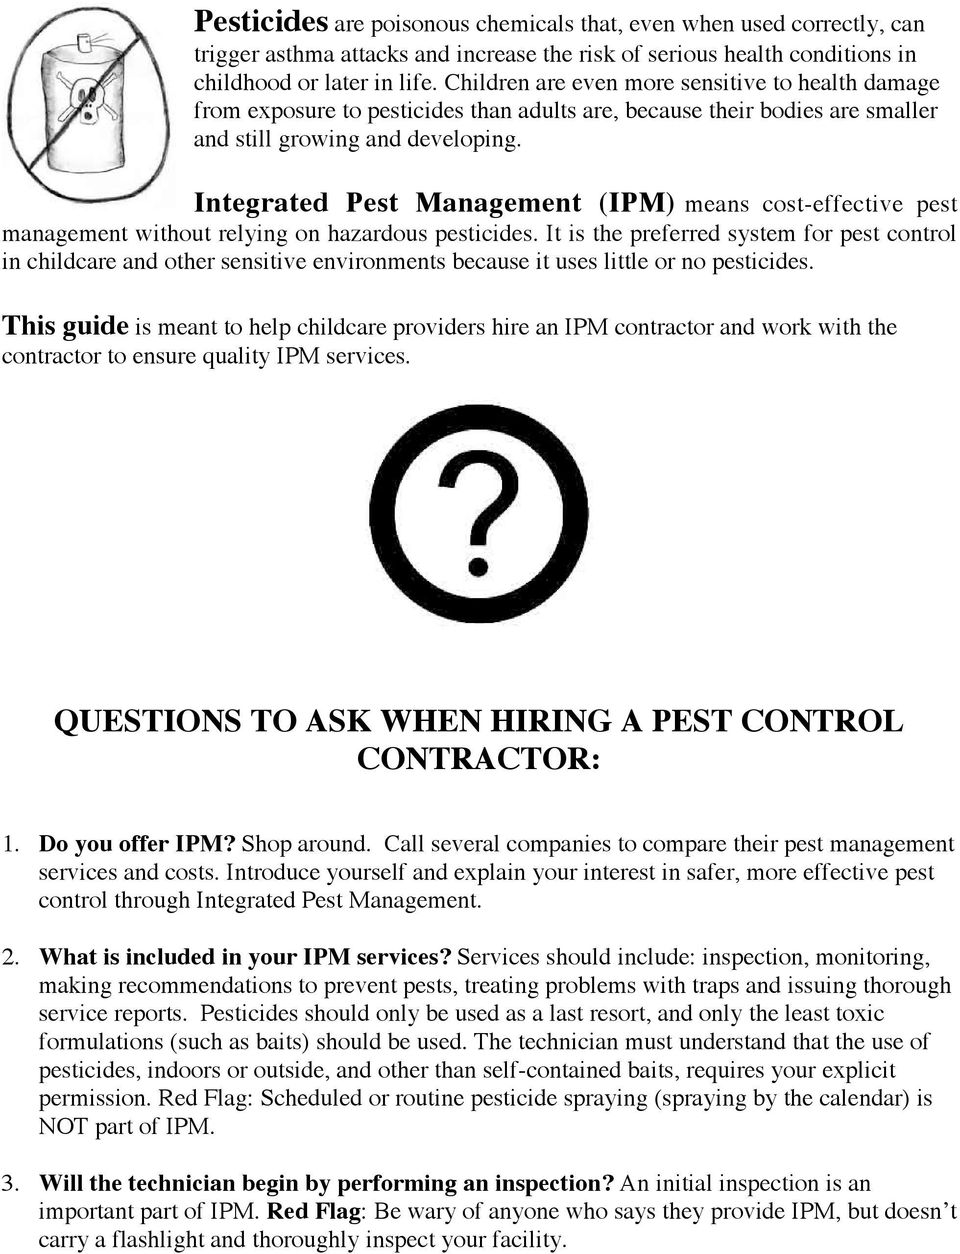 Integrated Pest Management (IPM) means cost-effective pest management without relying on hazardous pesticides.